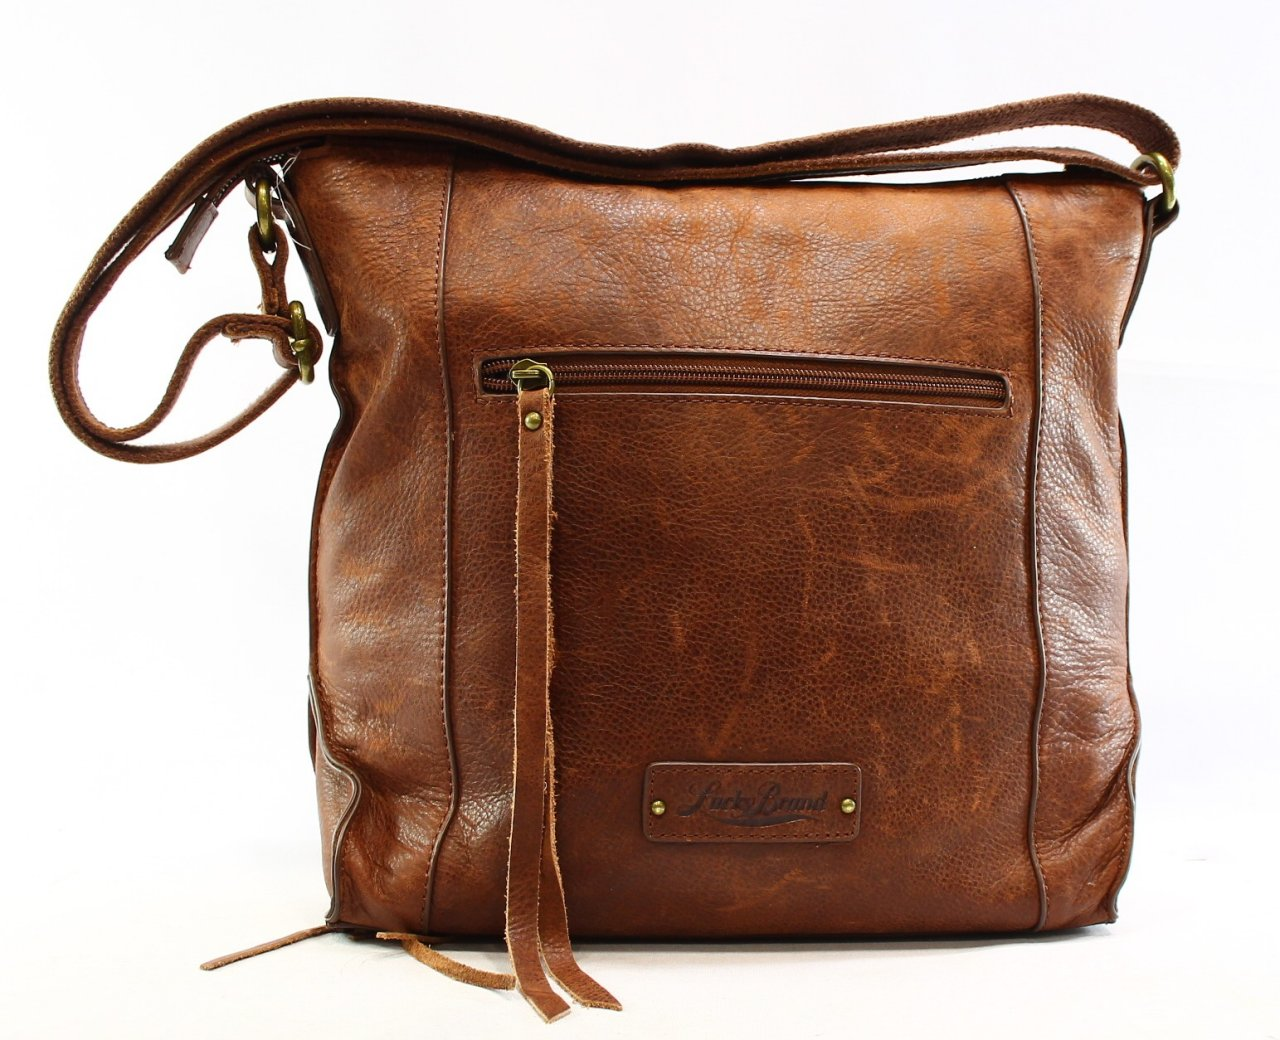 Shop for Bags from ShoeMall. Enjoy free shipping every day day and find great deals on the latest styles in shoes, clothing, accessories & more! Lucky Brand Wren Small Crossbody Bag. List Price: $ (0) Lucky Brand Wren Tote Bag. List Price.